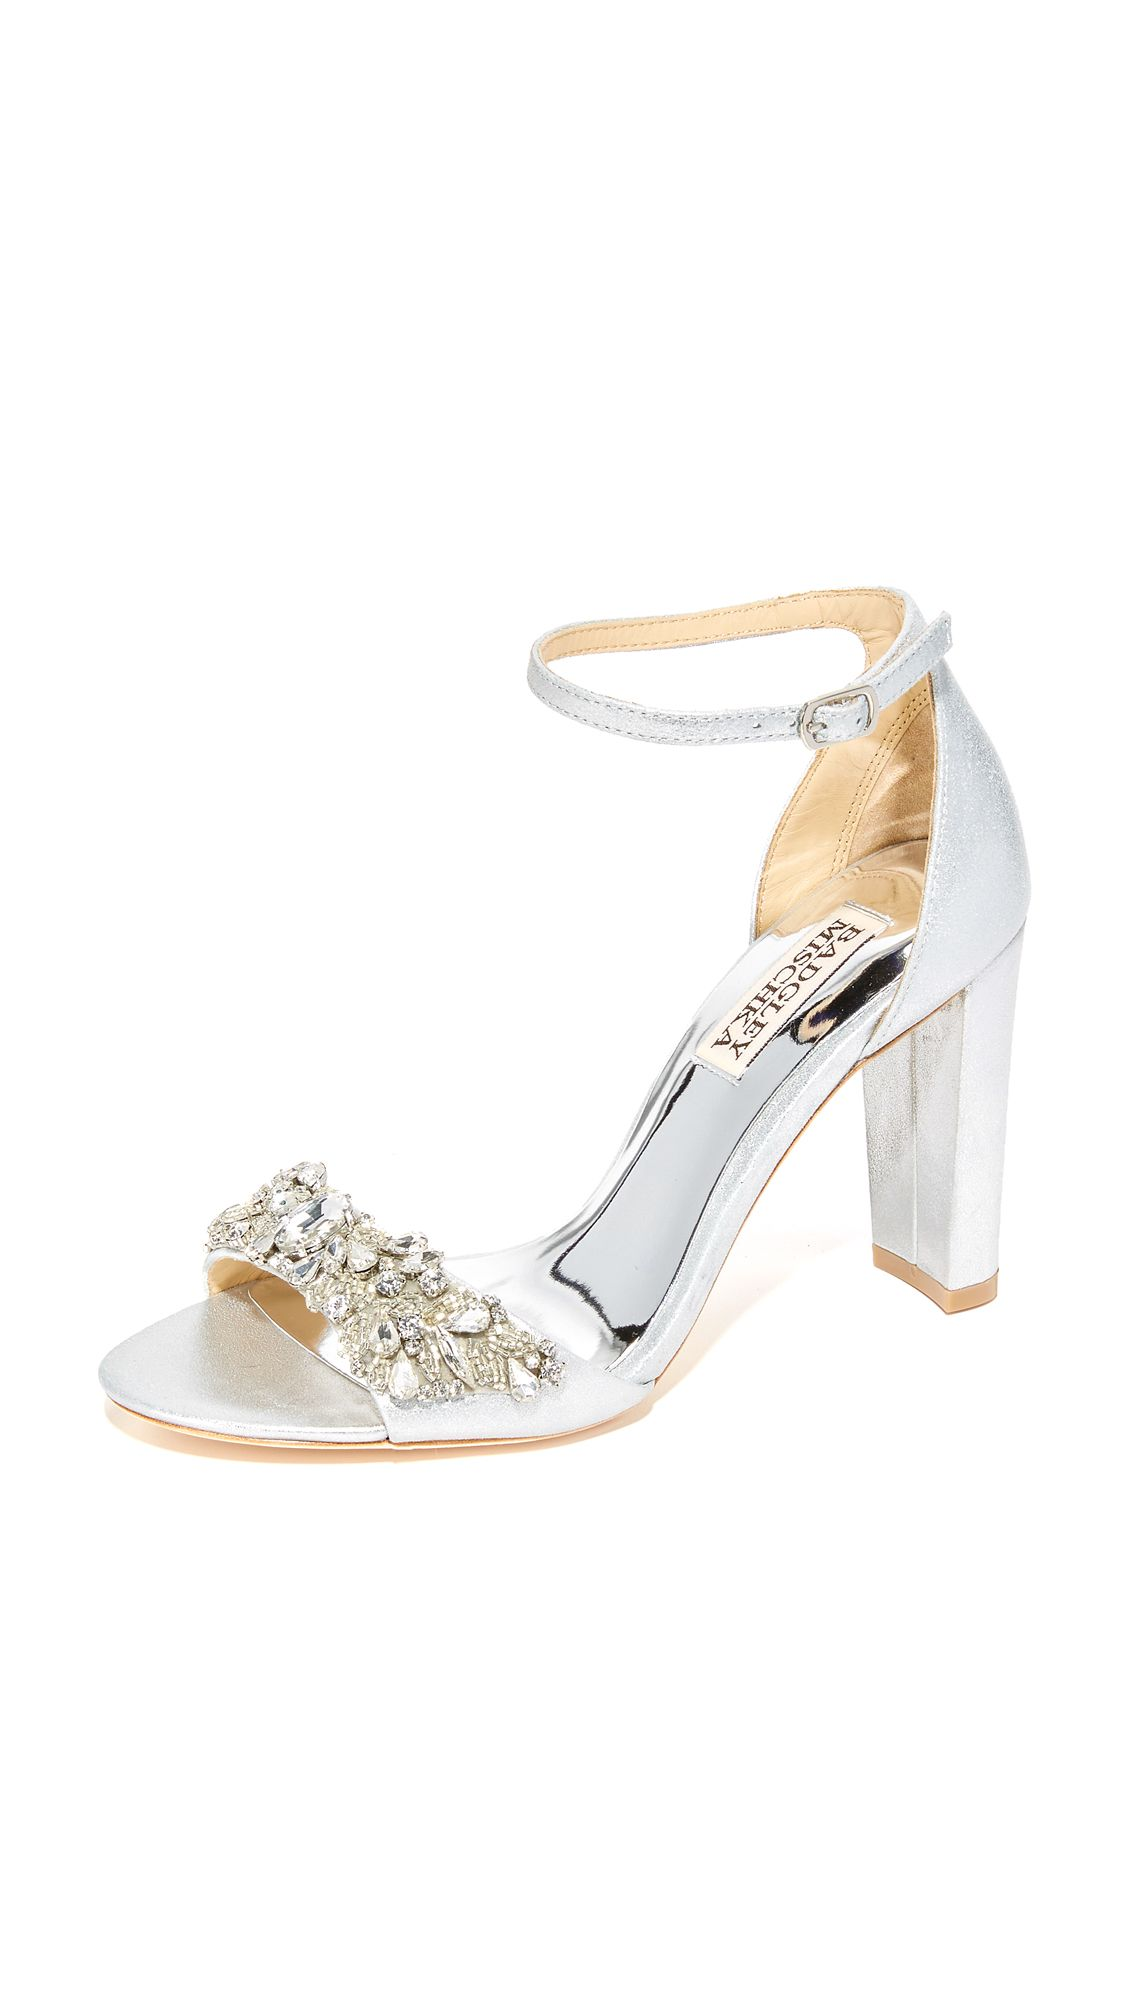 7d31e790ee3 Barby Sandals | Weddings | Badgley mischka shoes, Beaded shoes ...